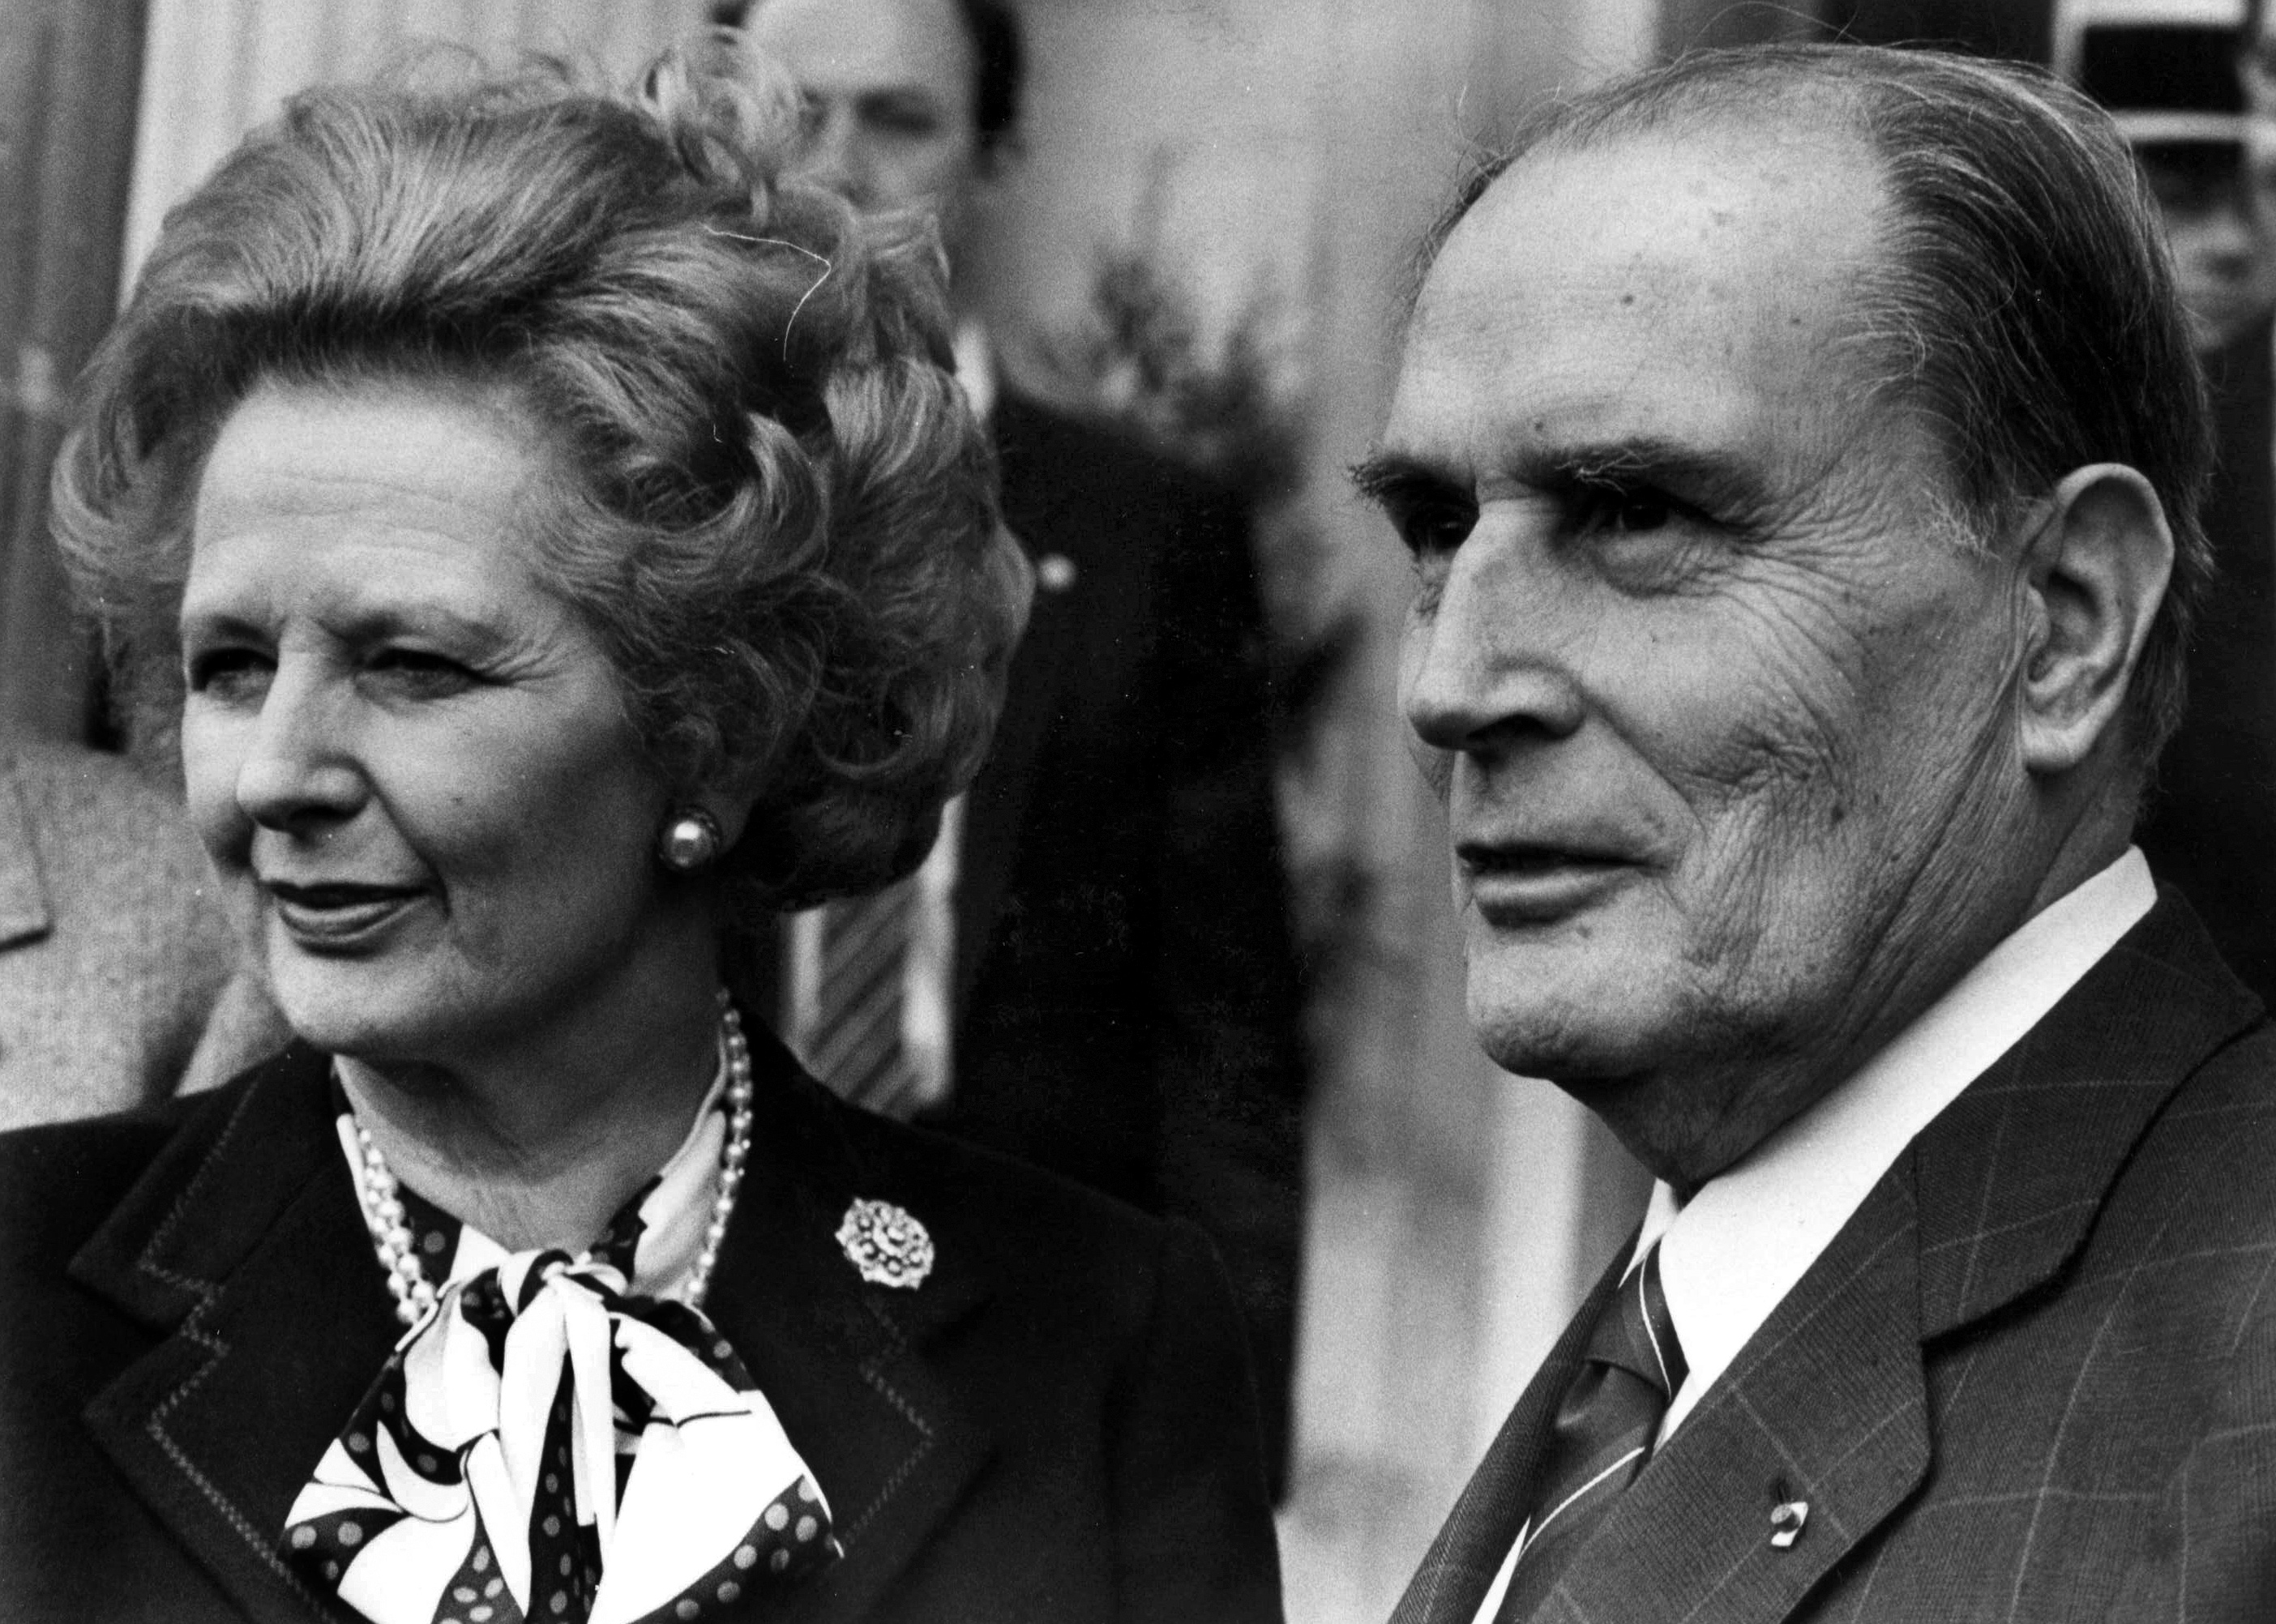 British Prime Minister Margaret Thatcher (L) and French President Francois Mitterrand pose for the media after a meeting about nuclear arms control at the Chateau de Benouville in Normandy, western France, March 23, 1987.   (FRANCE) - PM1E53A1FQJ01